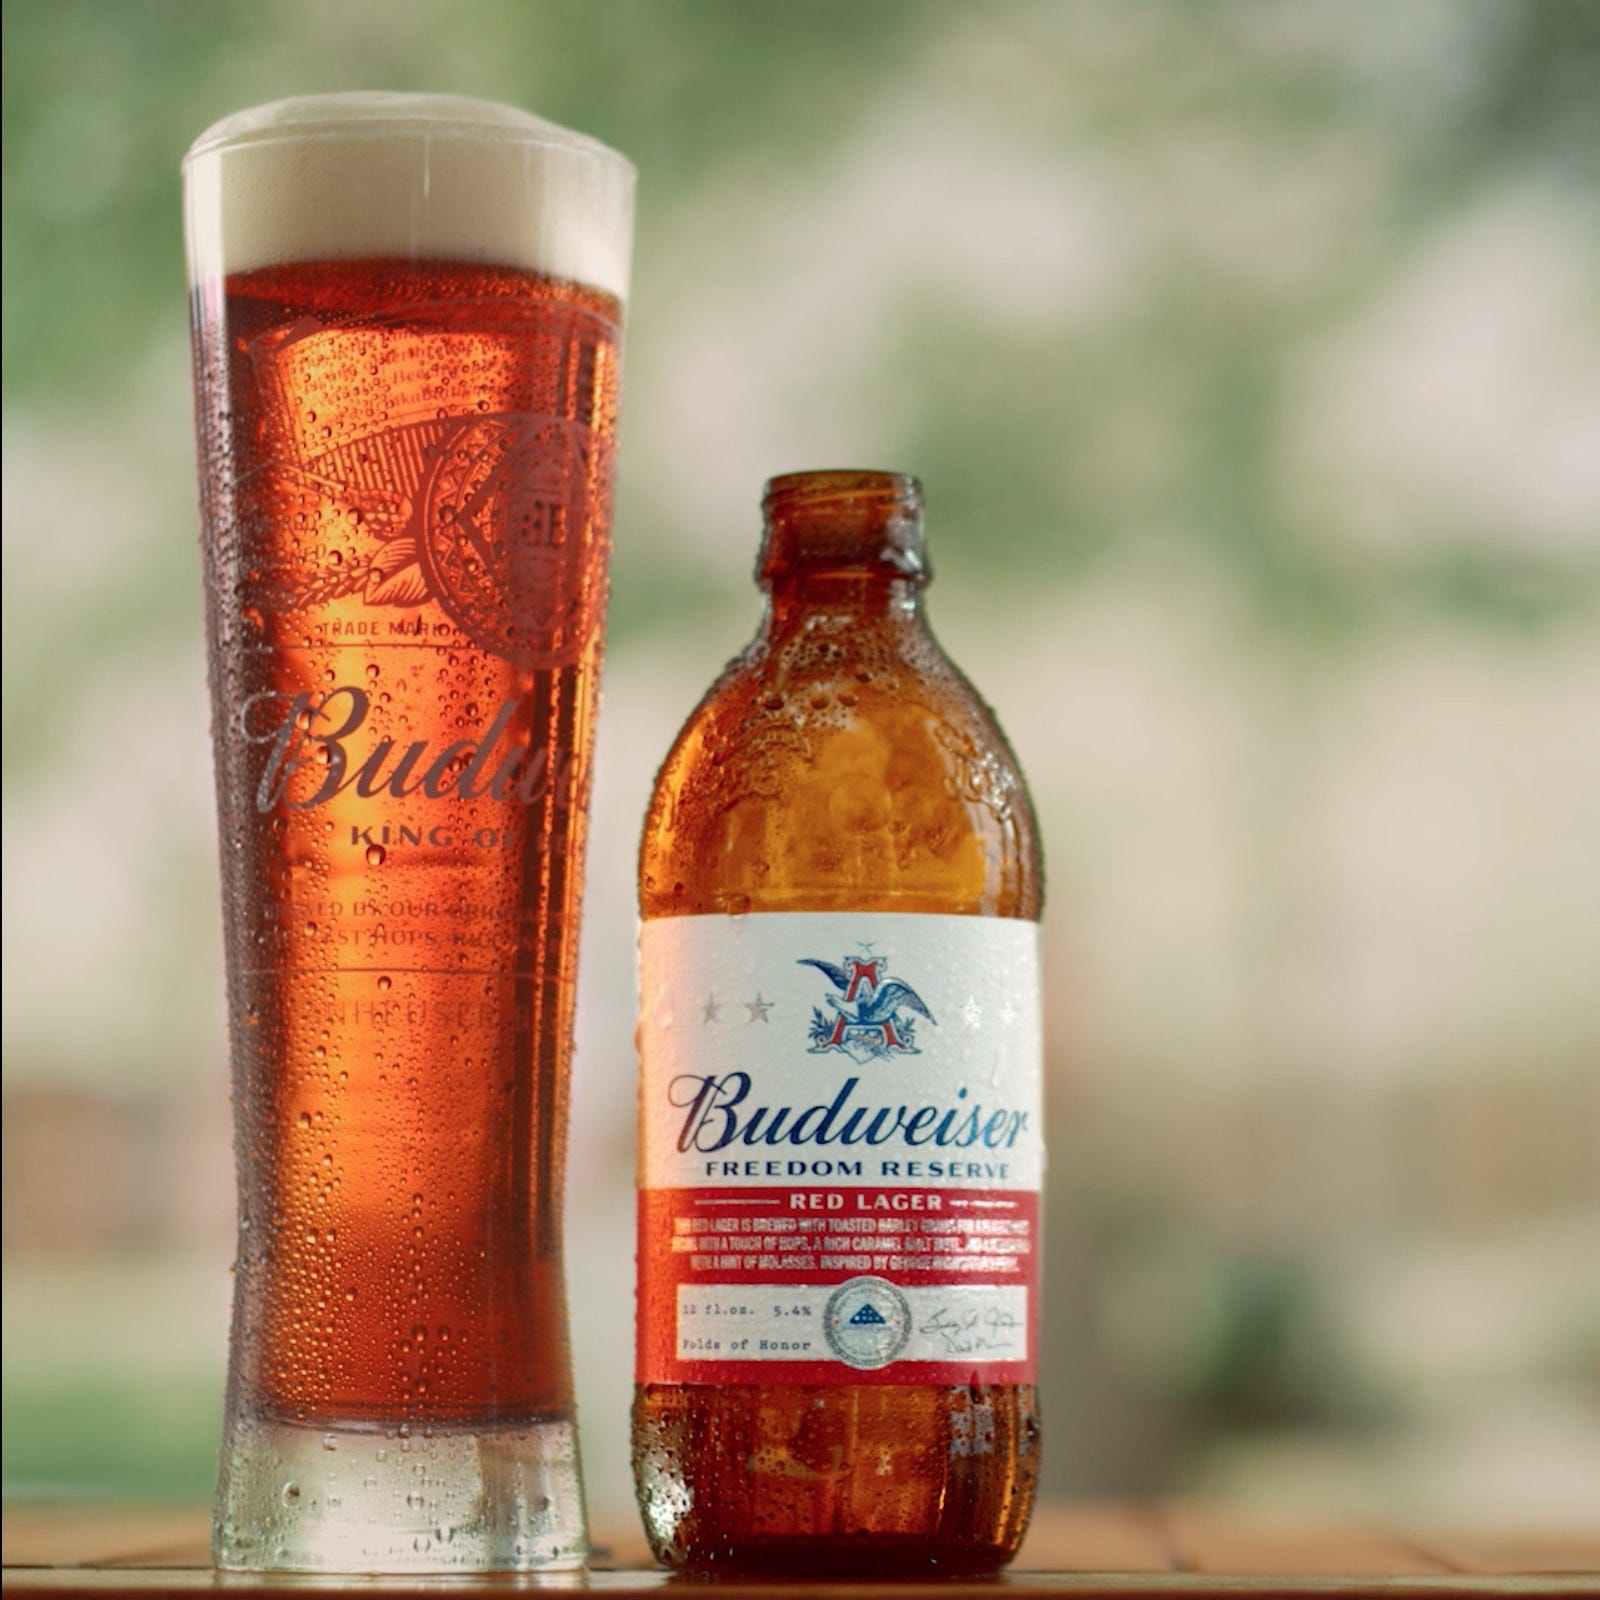 Budwiser commerical nudist coloney